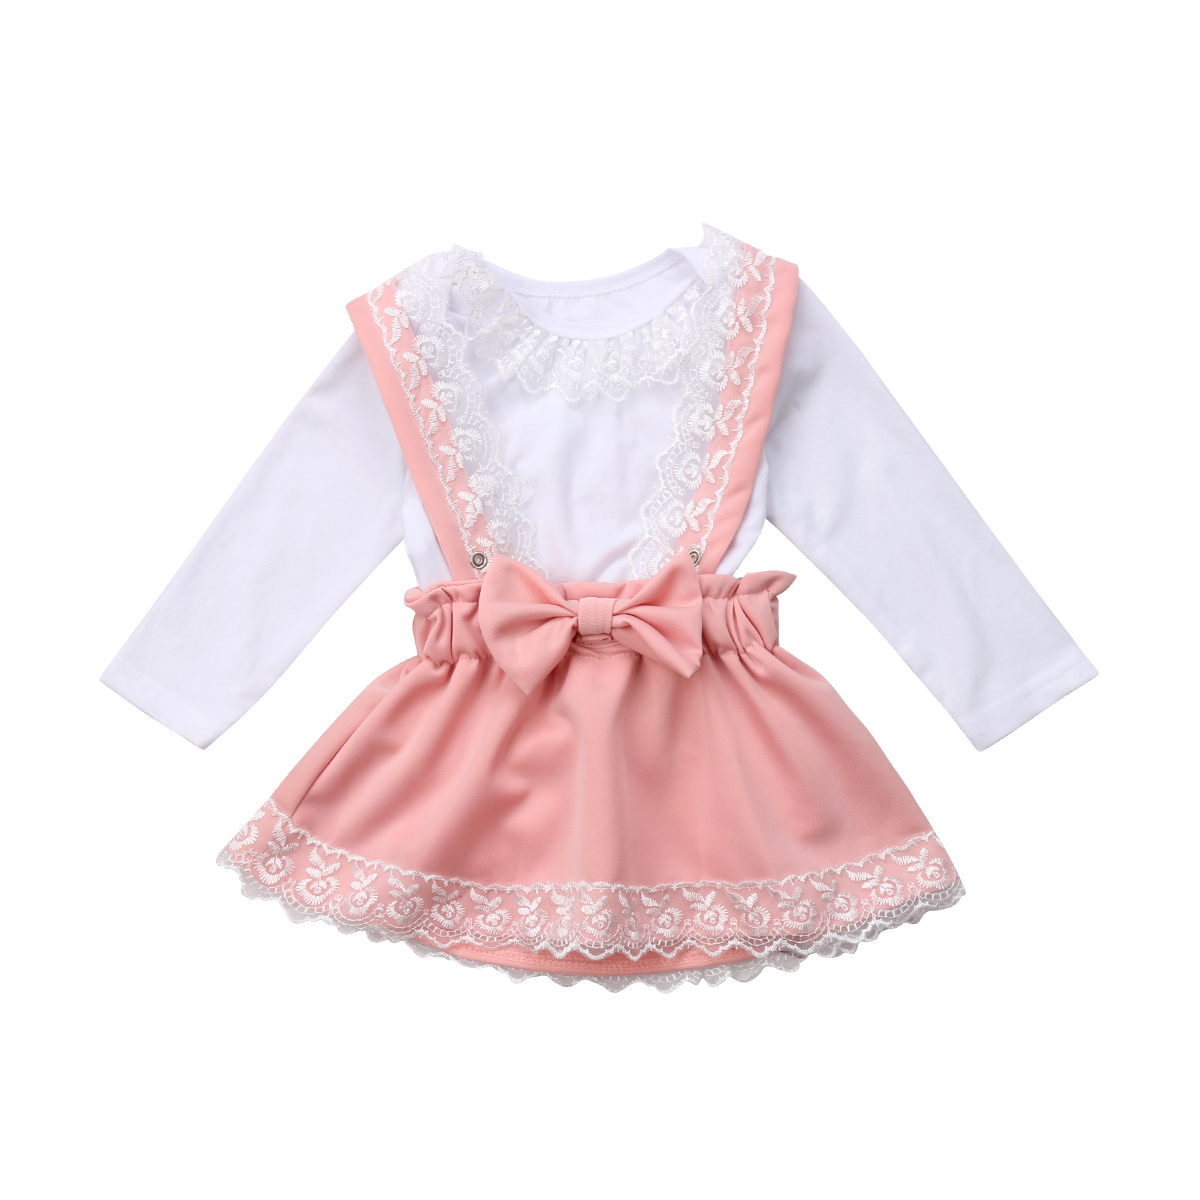 Outfits Set Infant Baby Girls Sleeveless Backless Halter Bowknot Top Floral Shorts Bloomers Summer Clothes